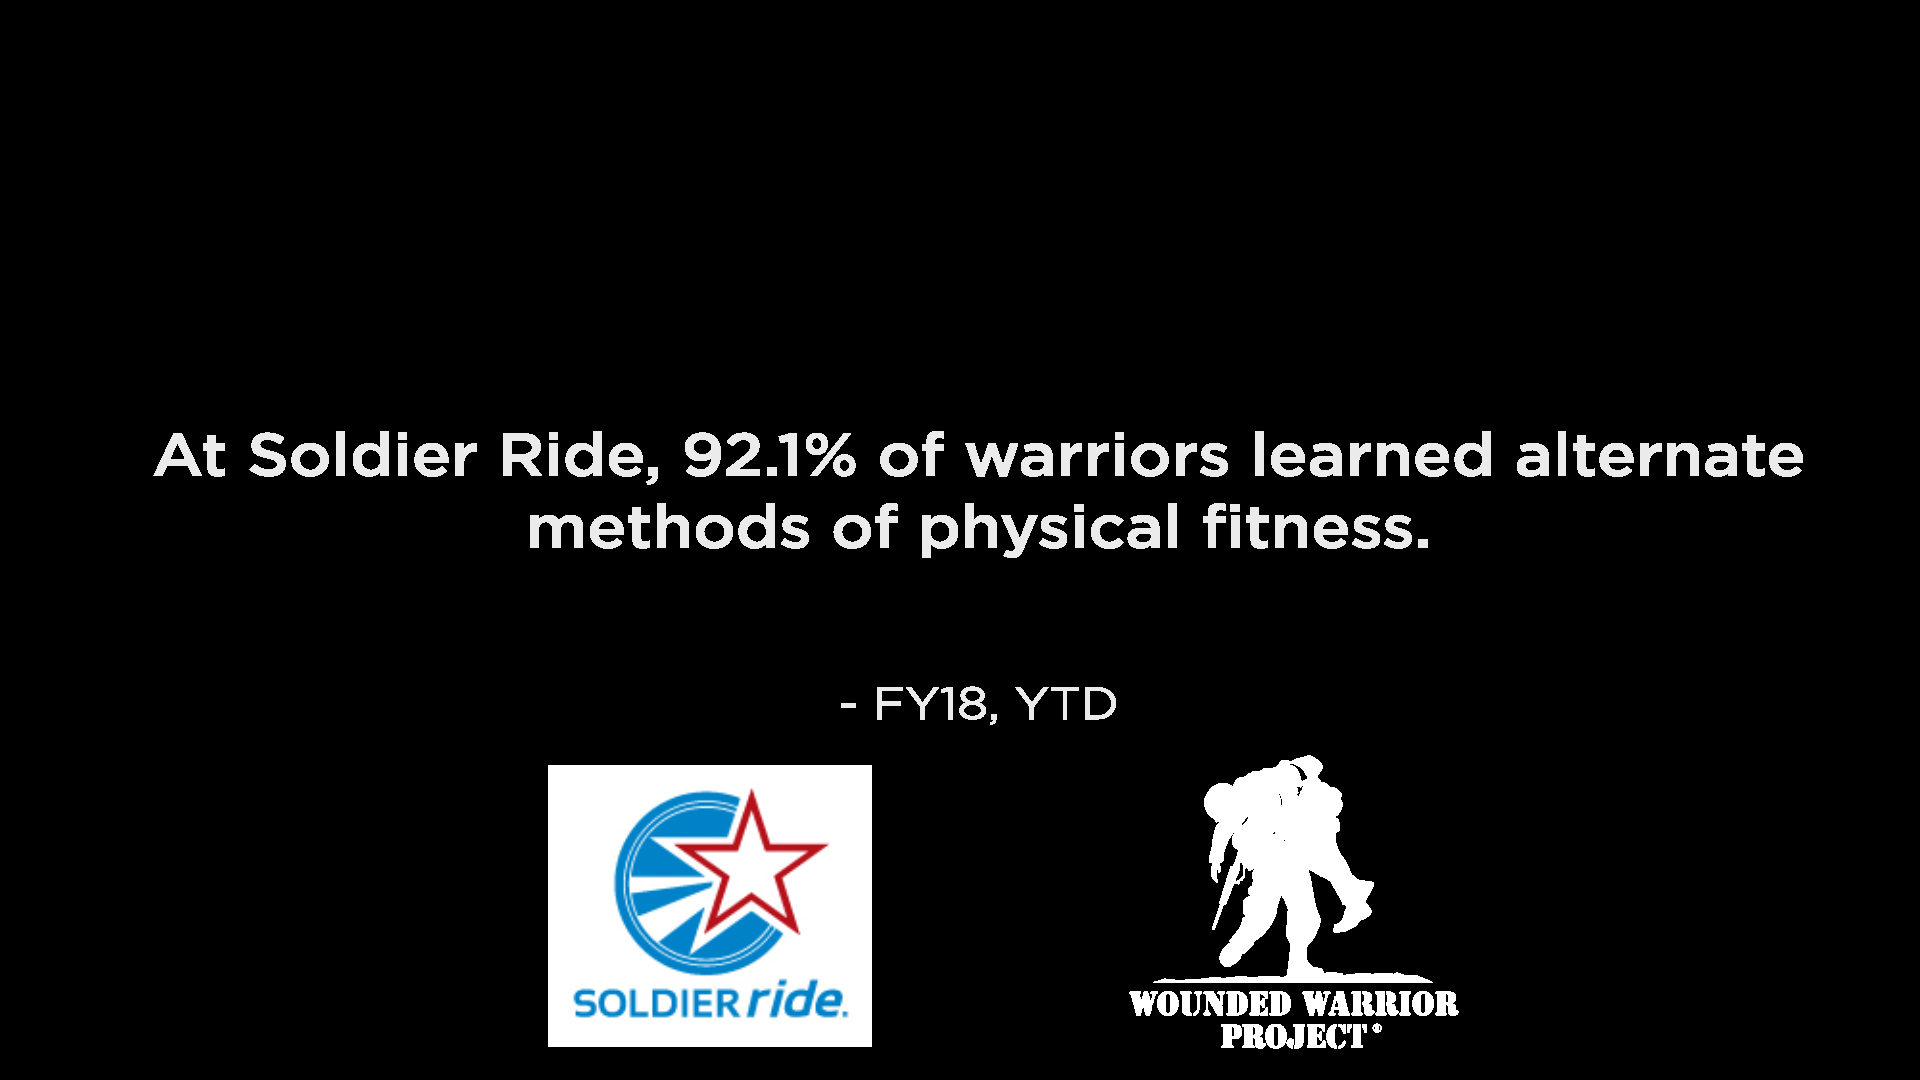 Warrior Physical Fitness Awareness – Report on educating warriors on various methods of physical fitness gained through Soldier Ride.